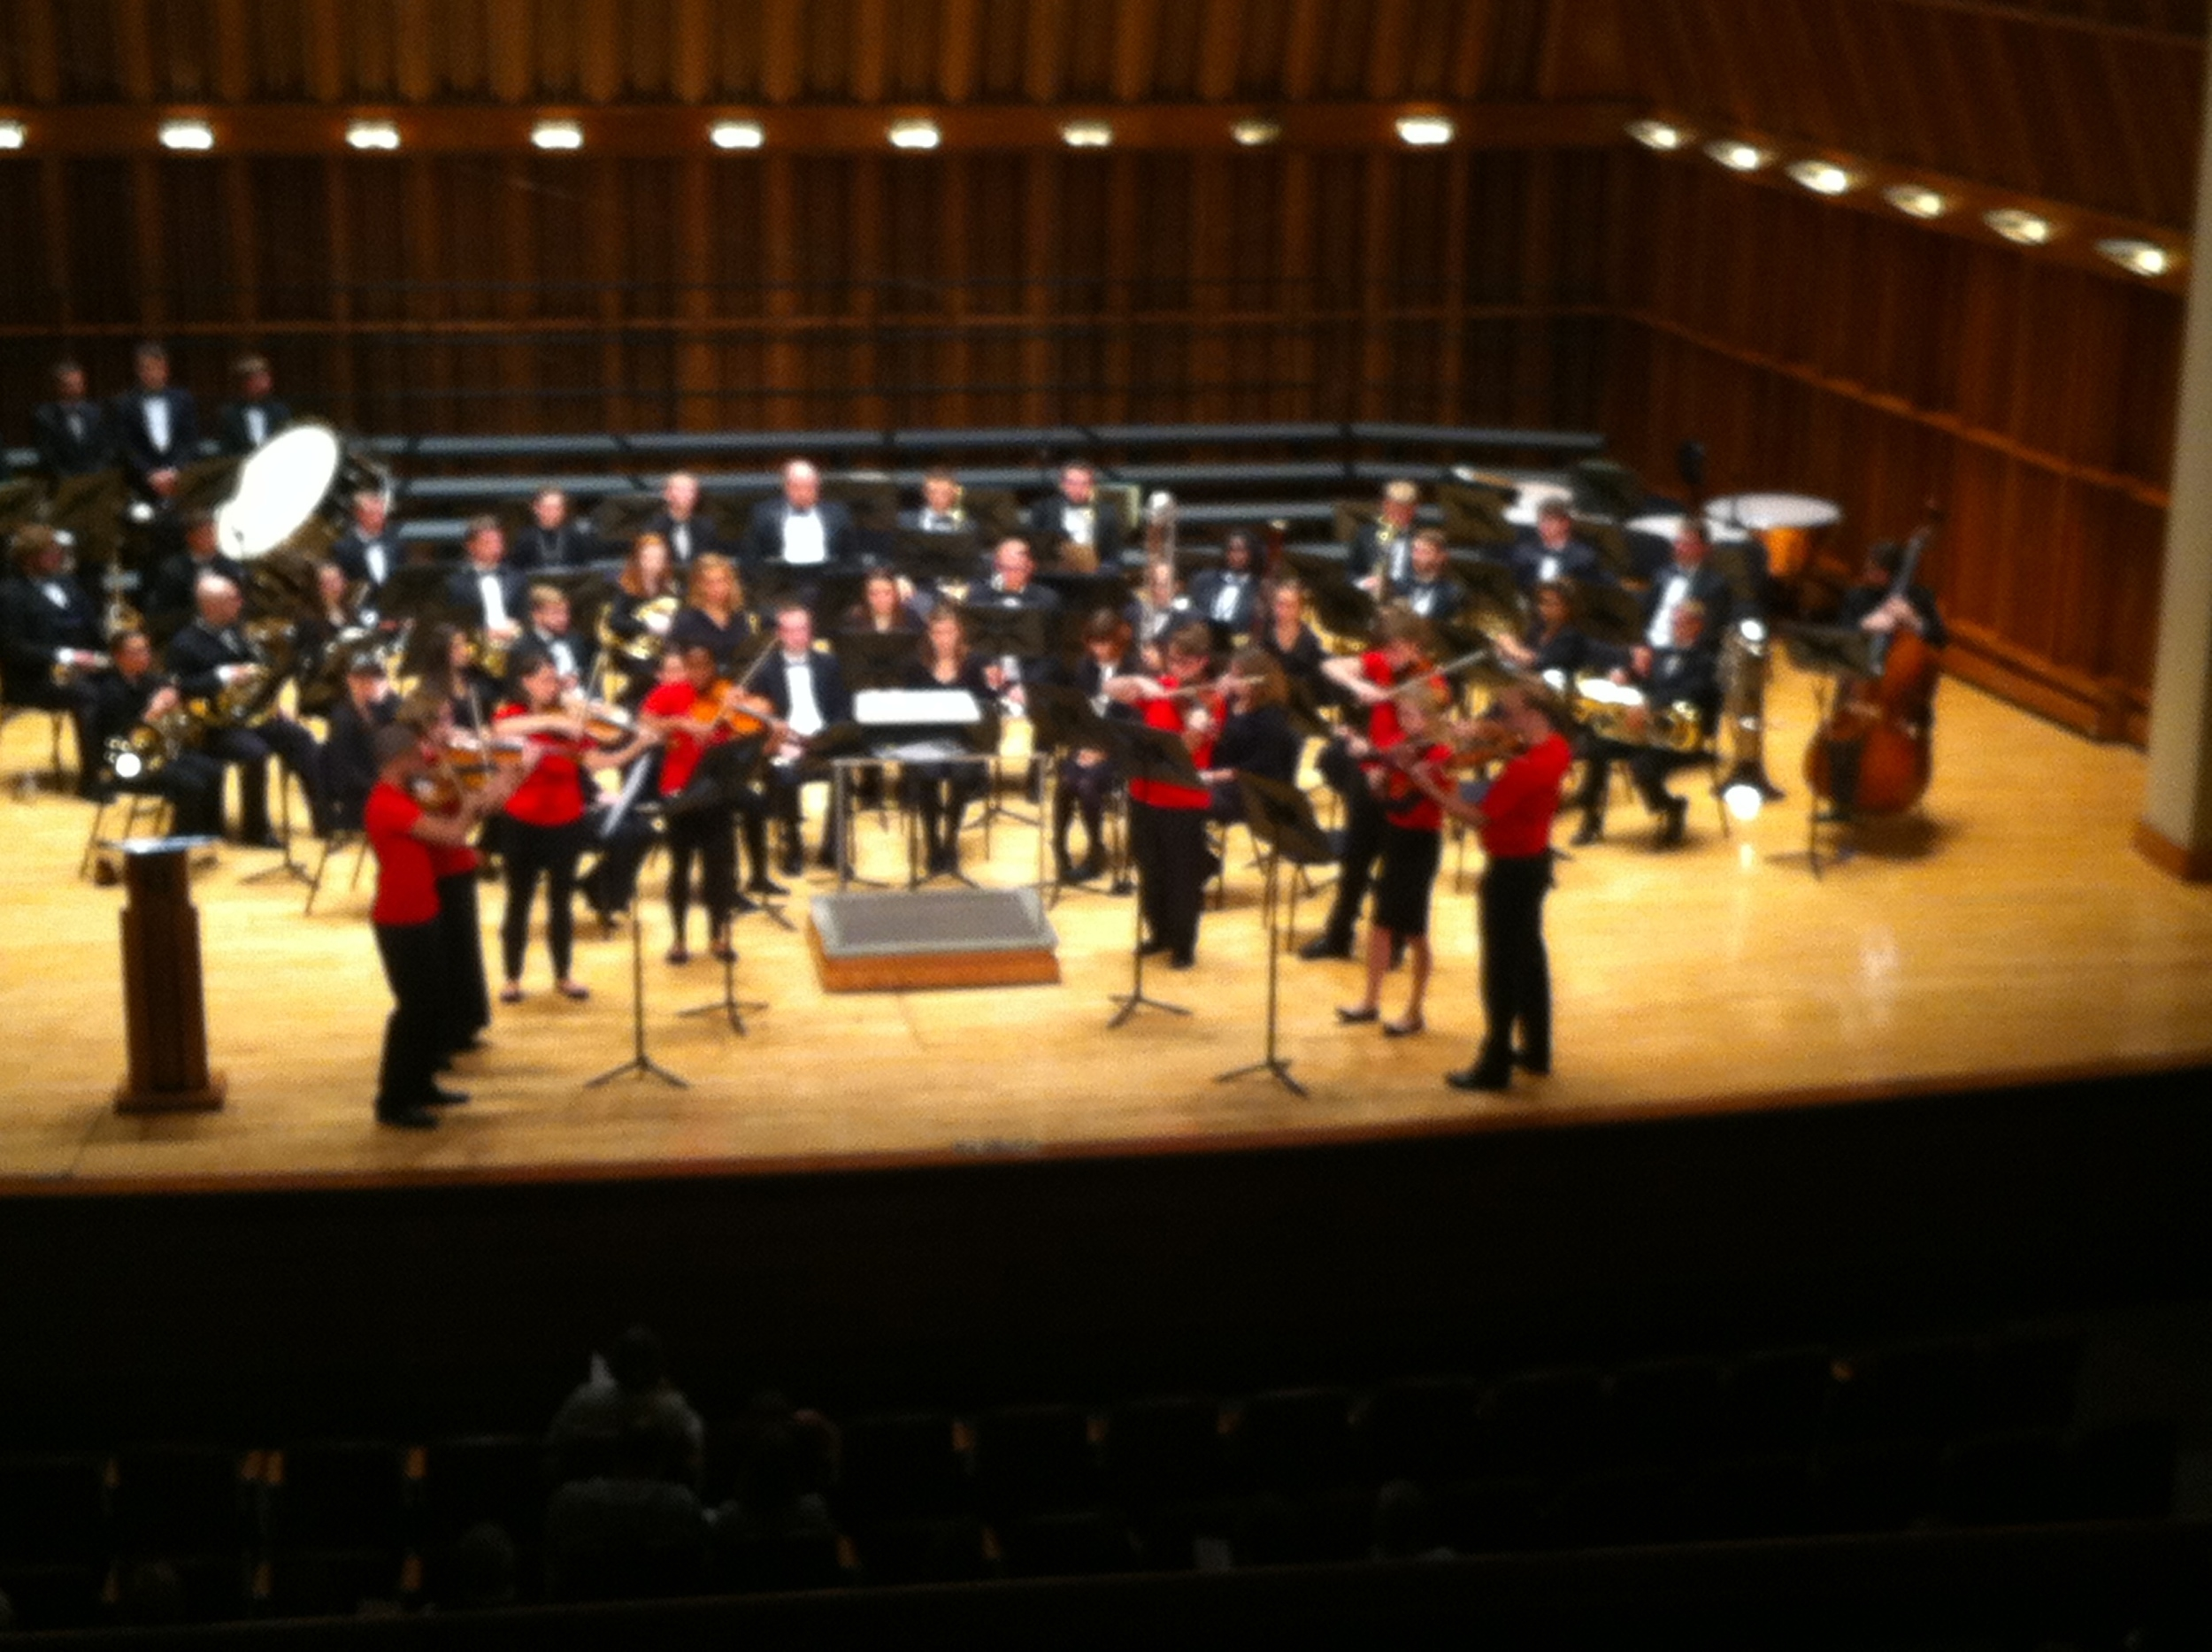 BSUVC in performance, with the Wind Ensemble on stage and ready to play.